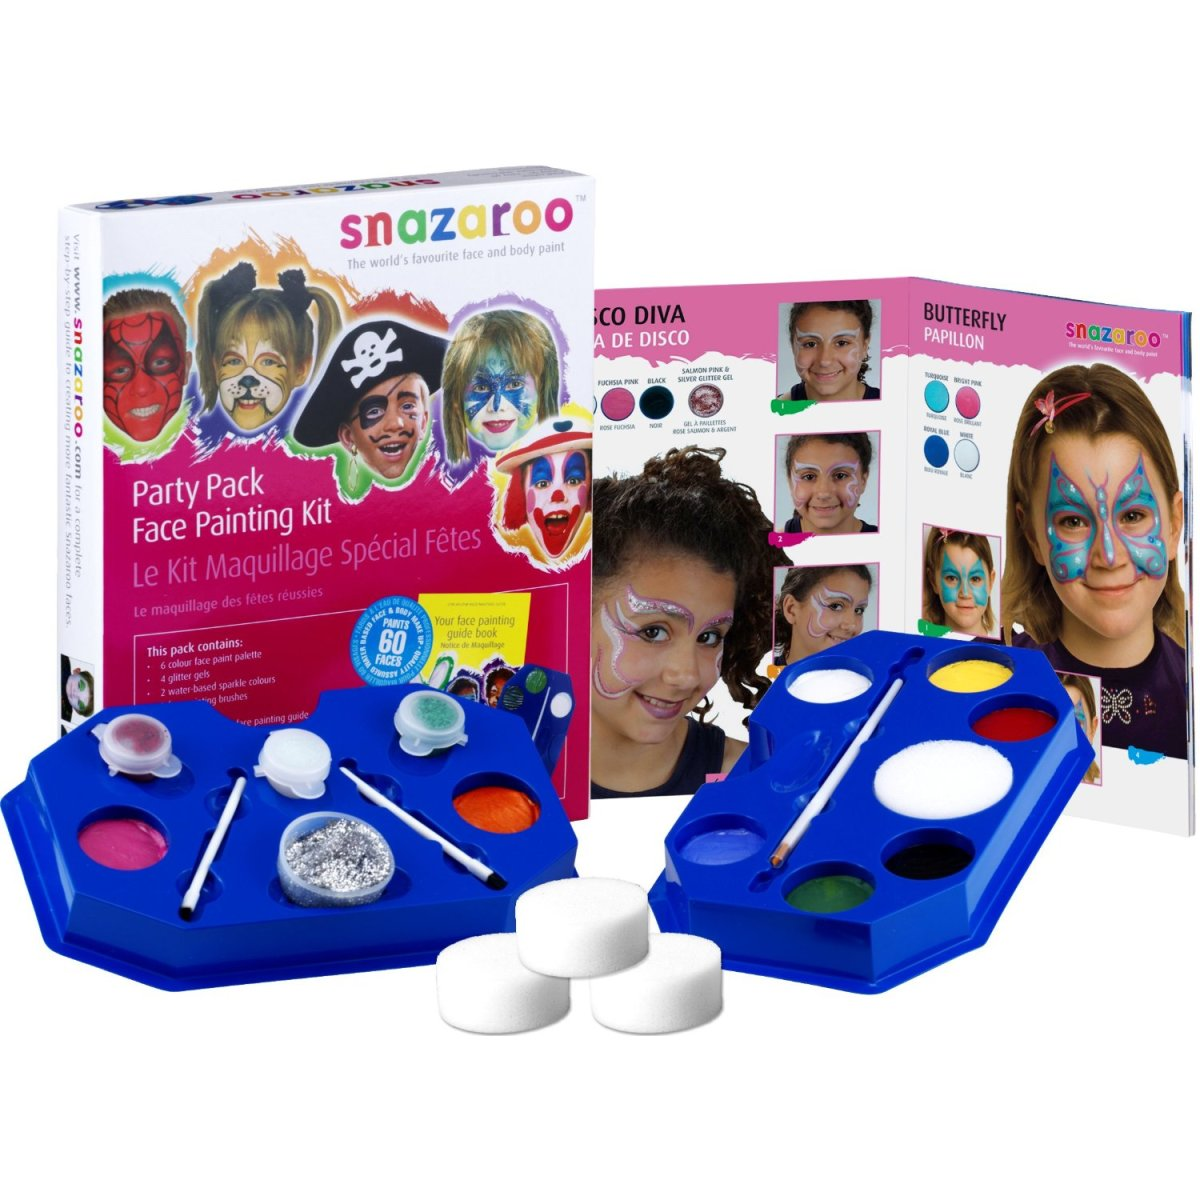 Kids Face Painting Kit for Halloween and Theme Parties All Year Round